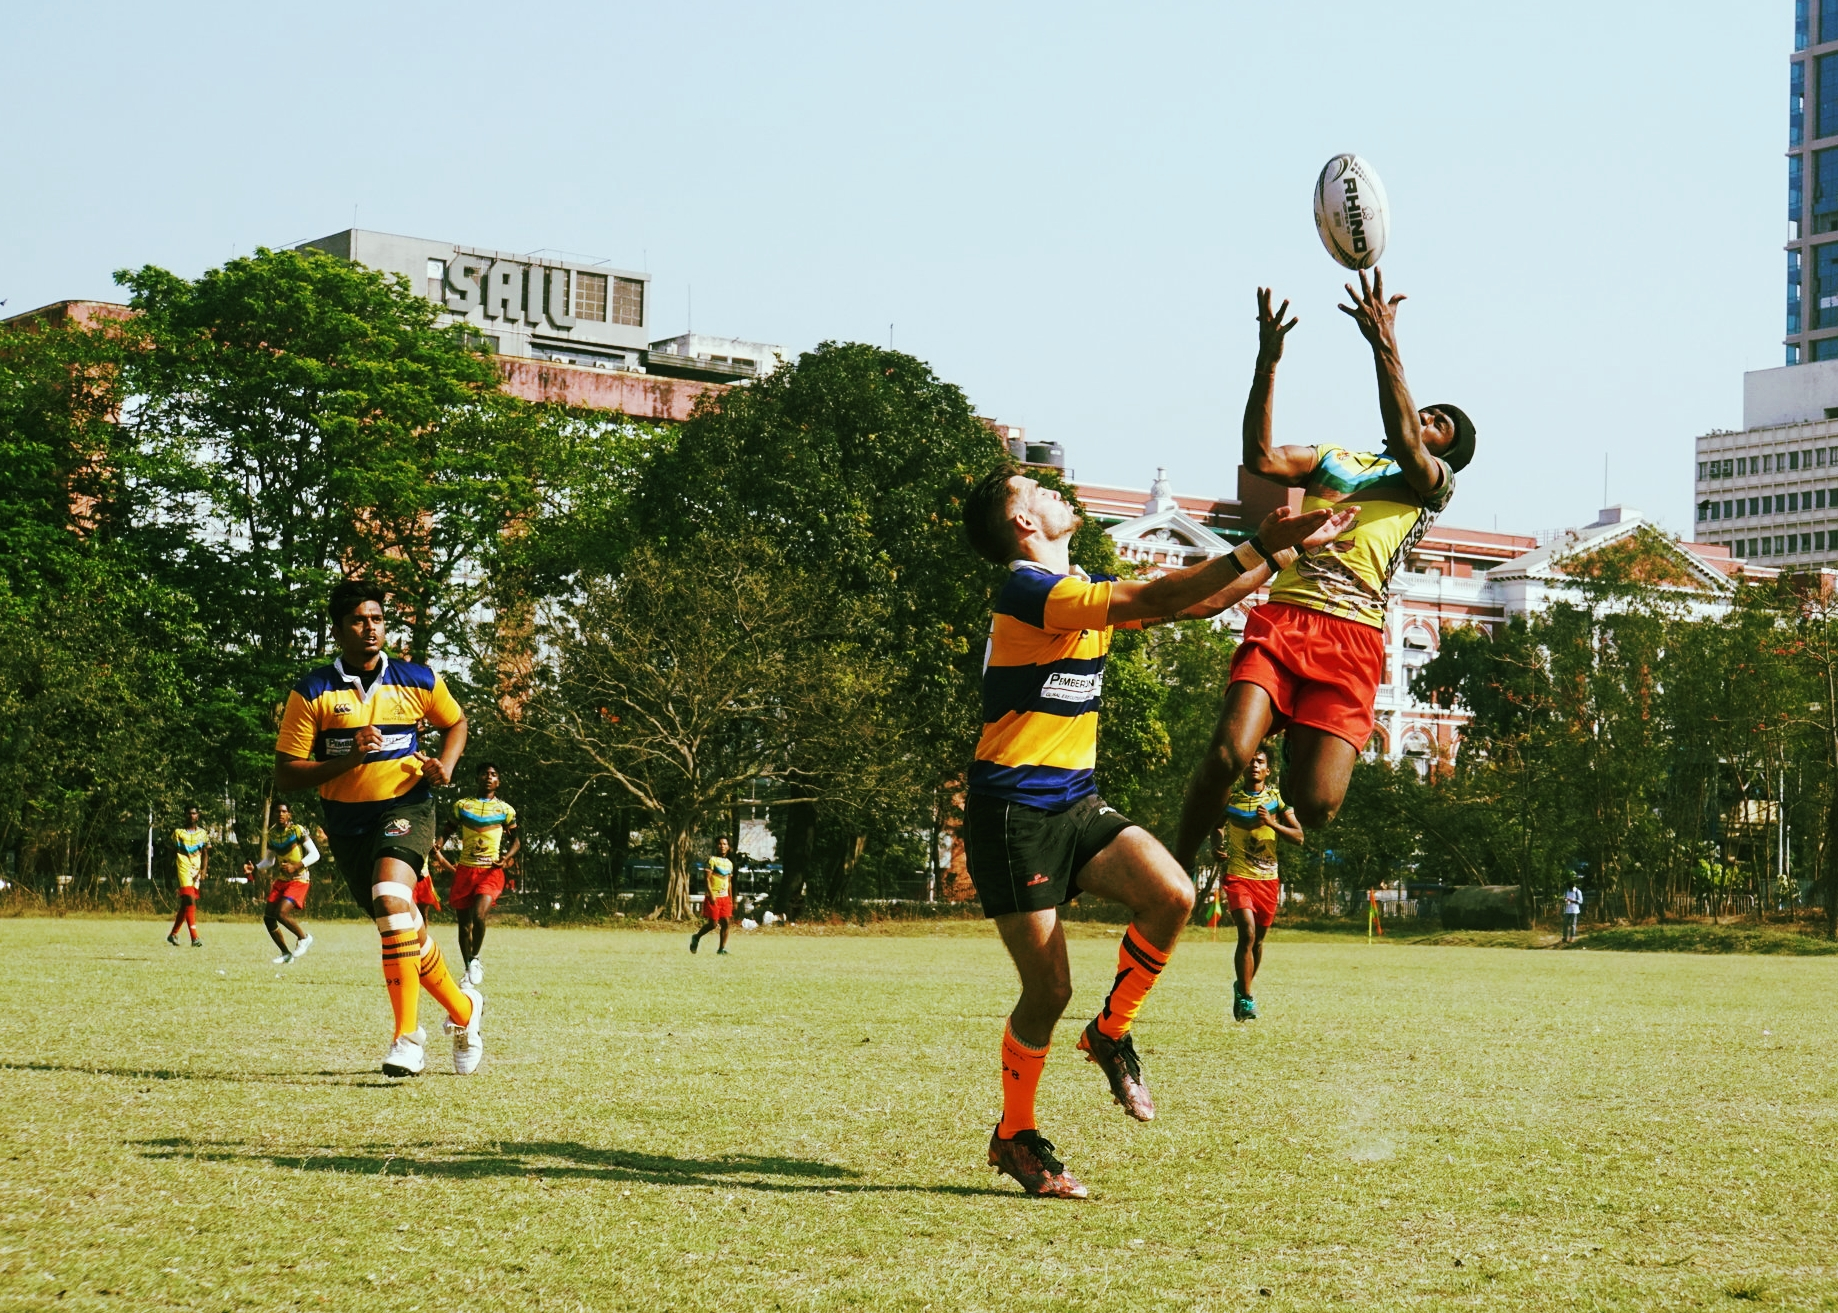 Action from Crow Field - rugby in the very heart of Kolkata!